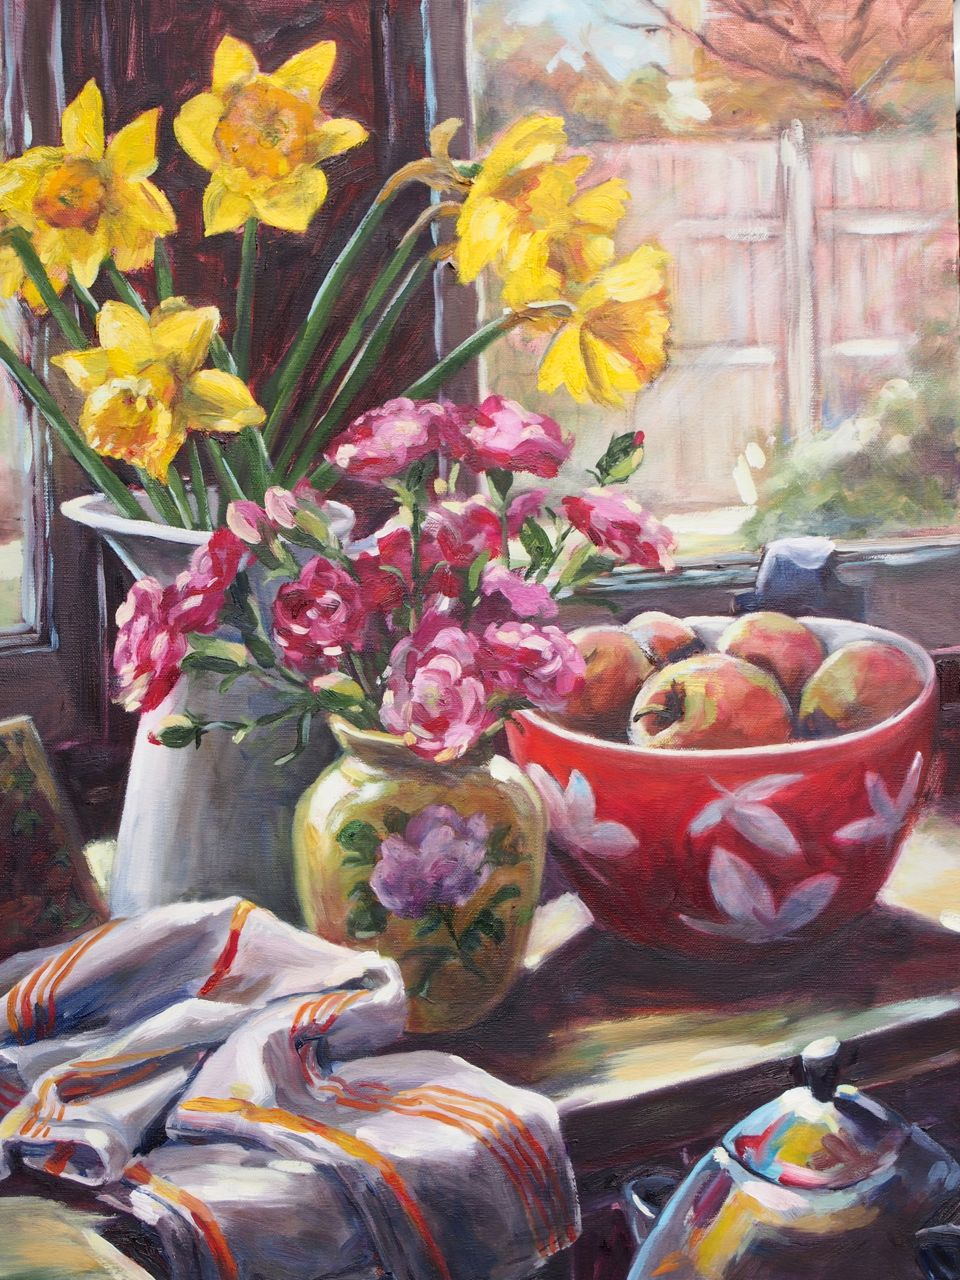 Still Life with Pink Carnations and Daffy's